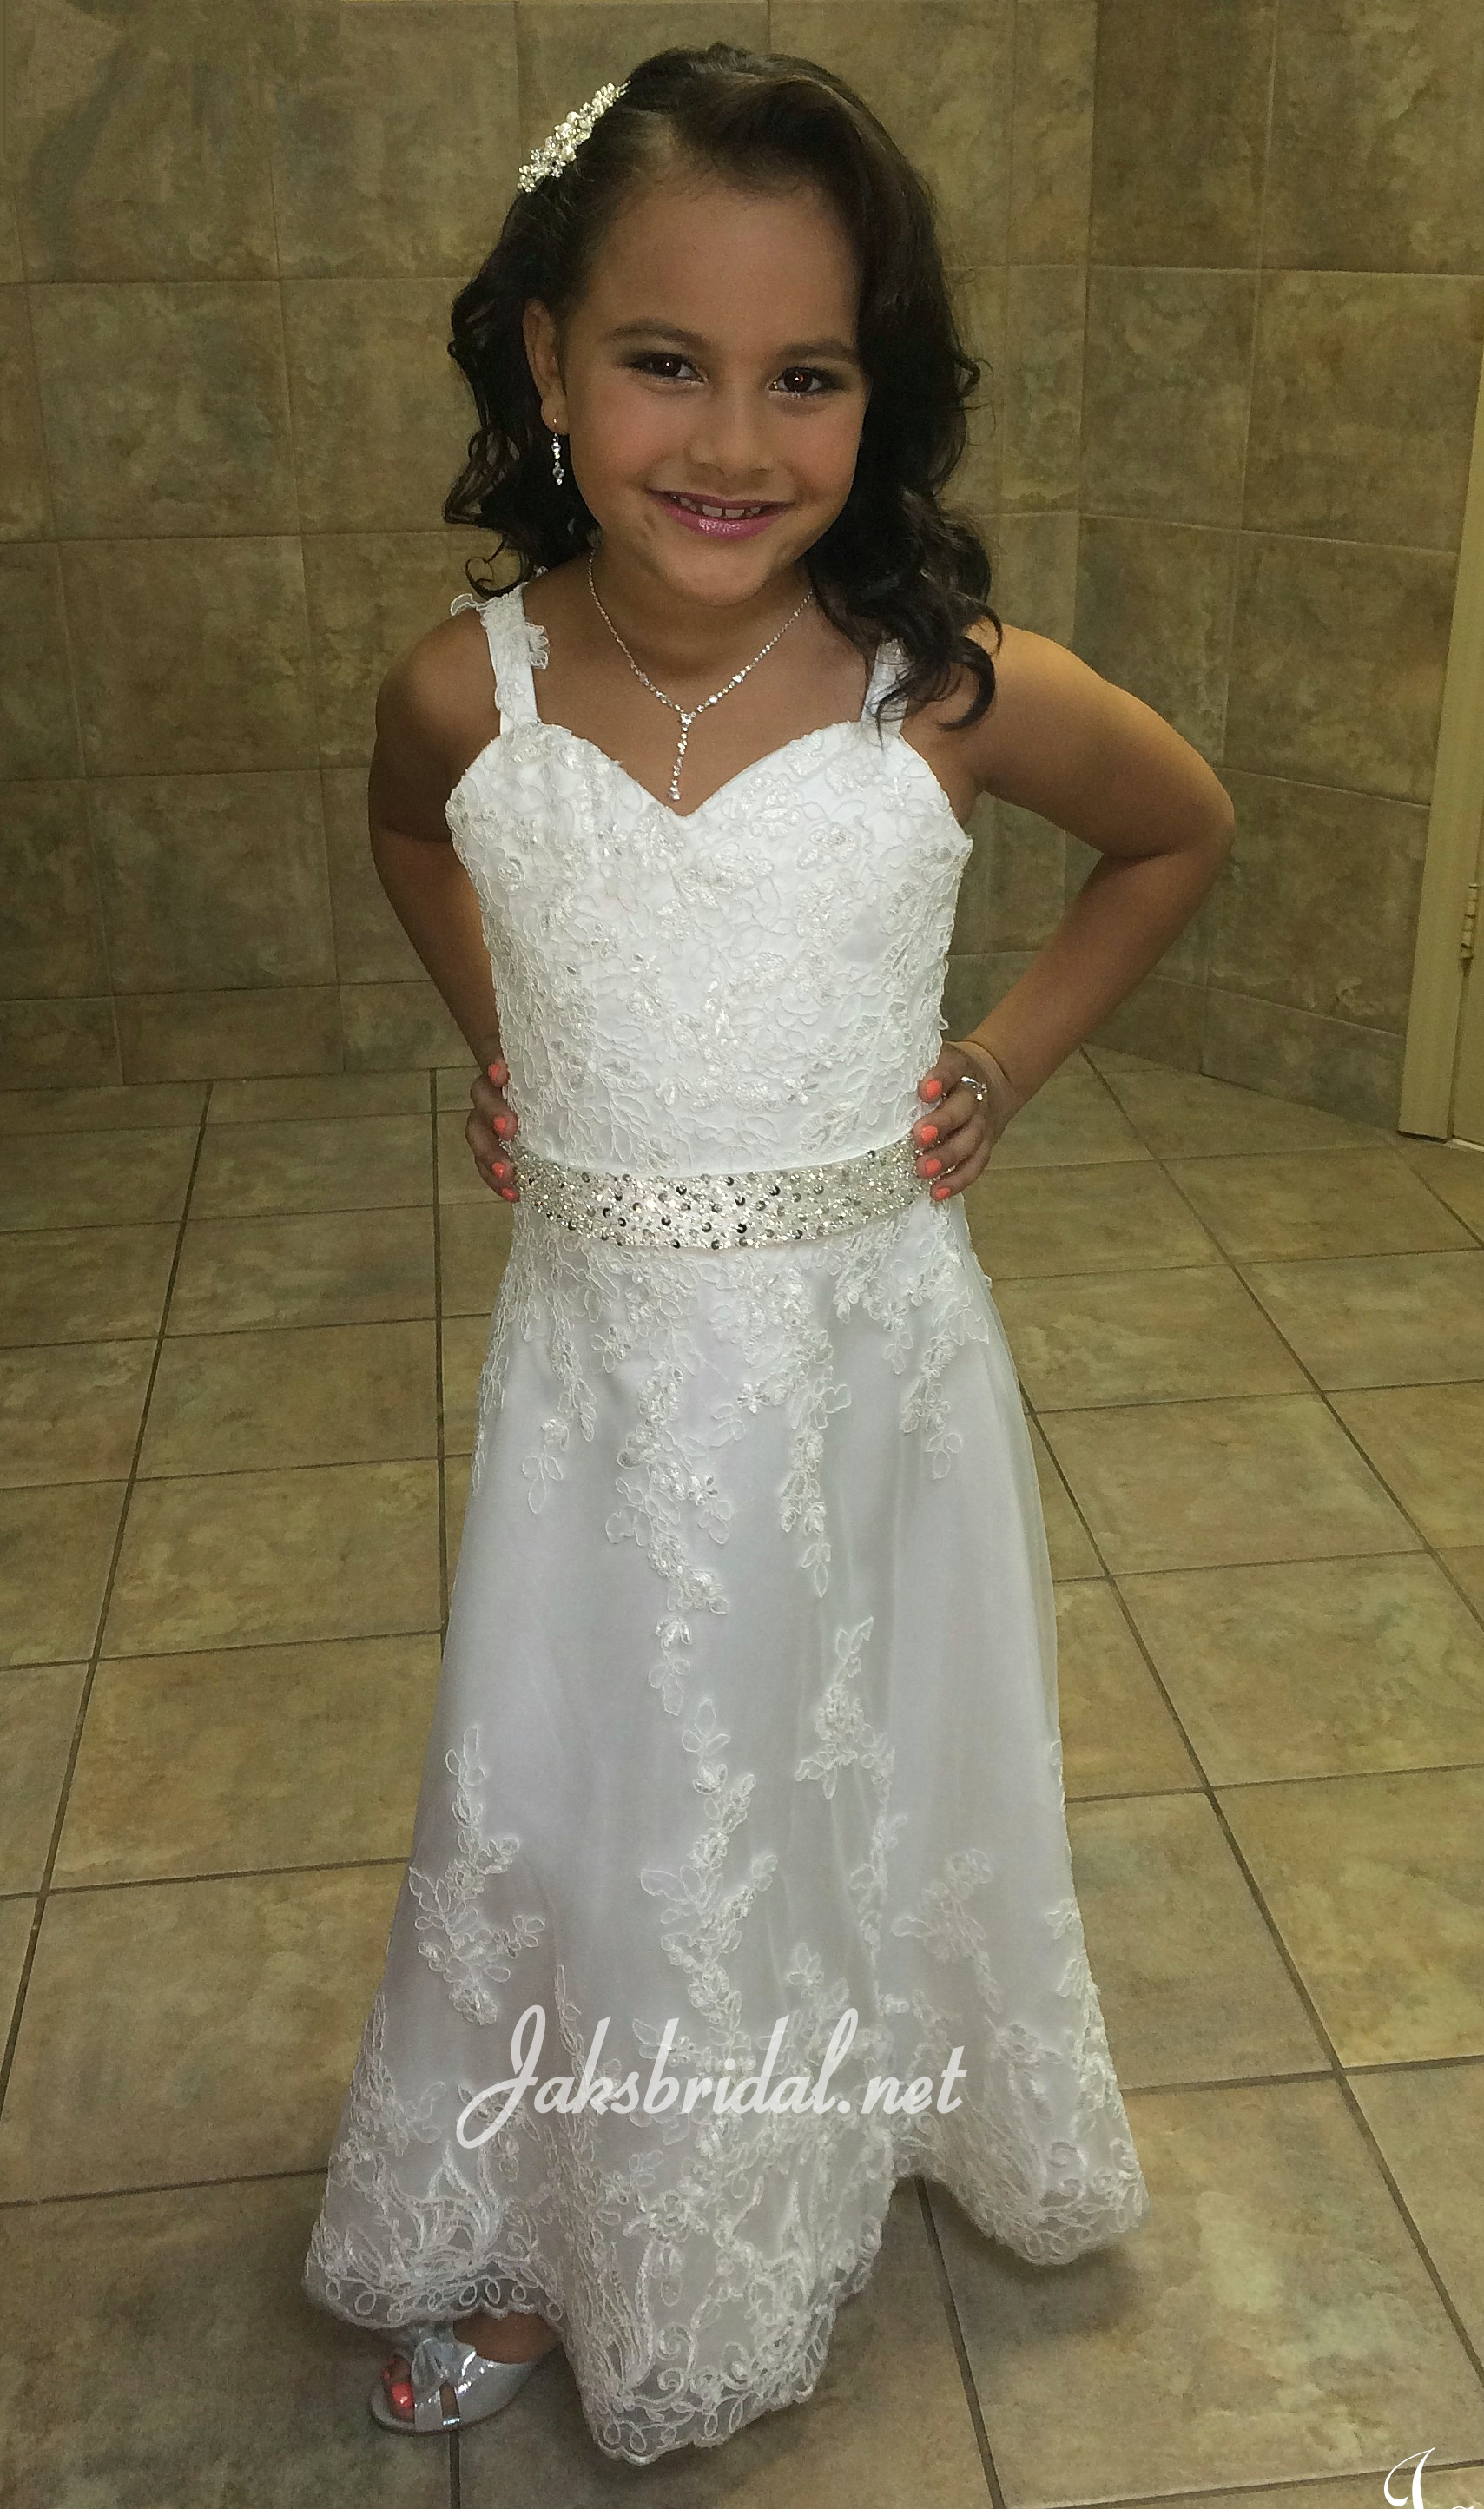 Sweetheart lace flower girl dress for Matching wedding and flower girl dresses